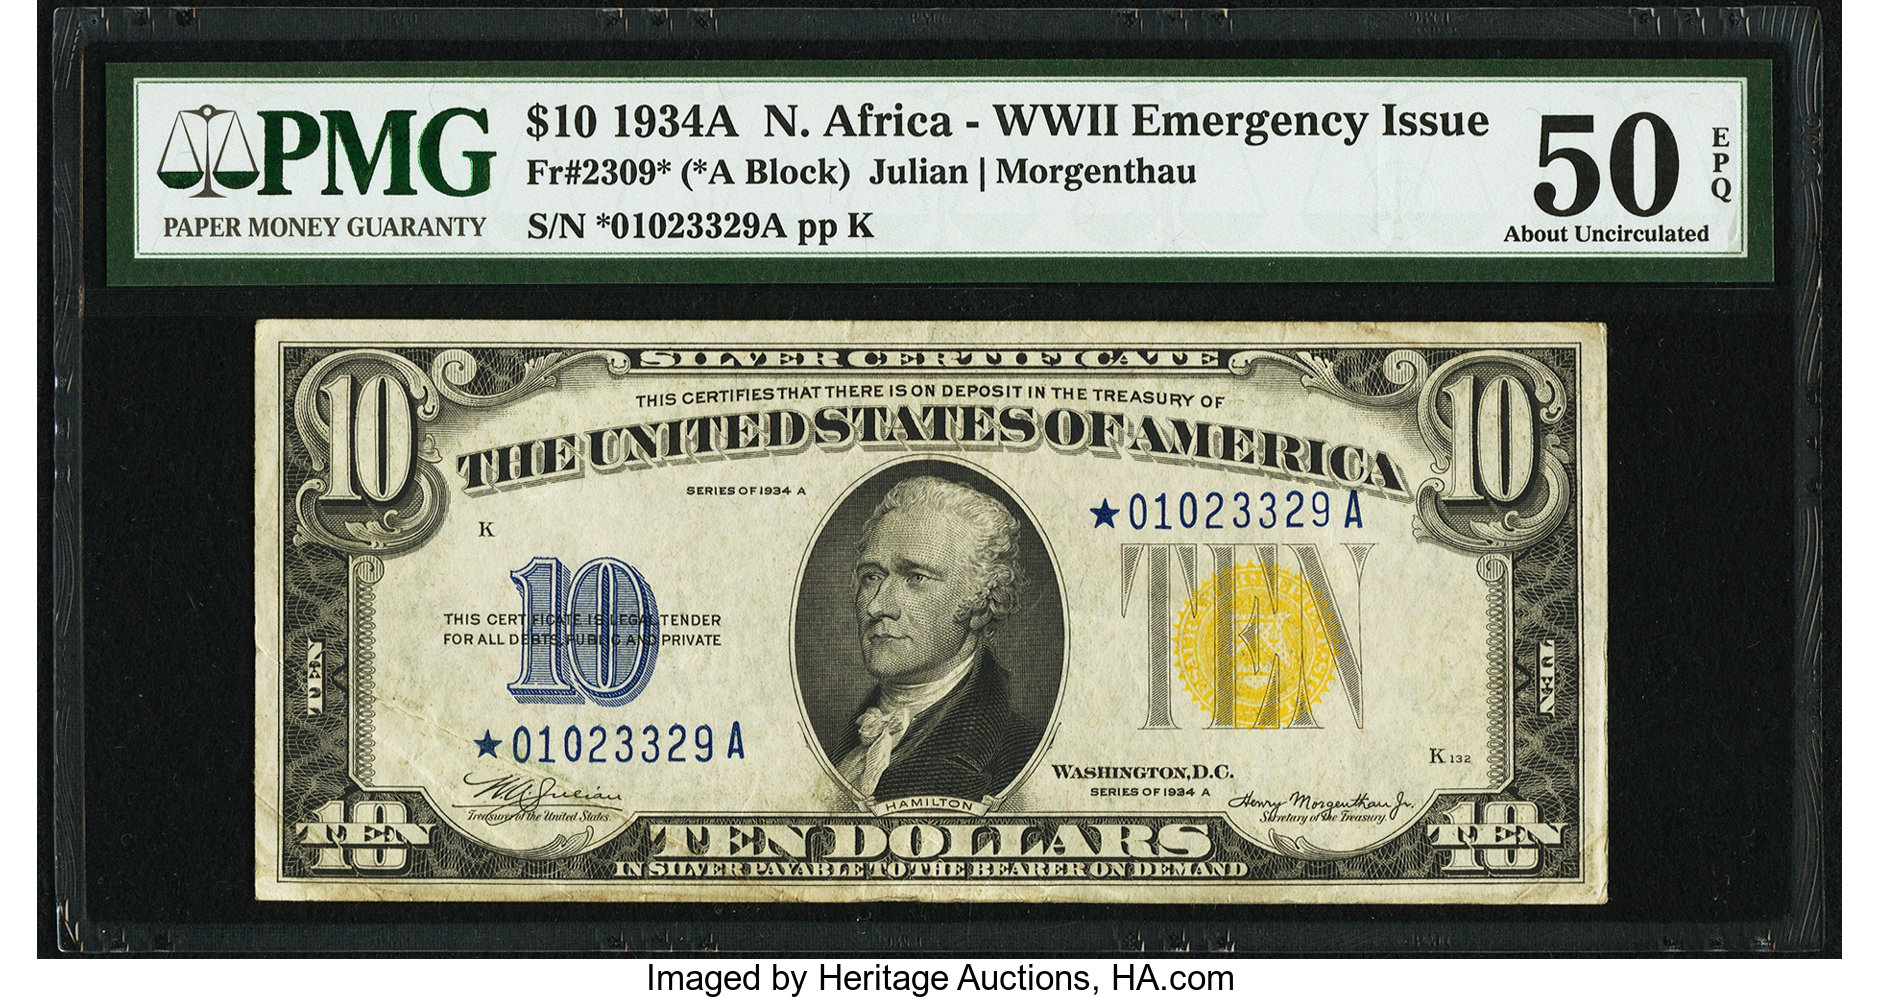 sample image for 1934A North Africa $10  (Fr.# 2309*)